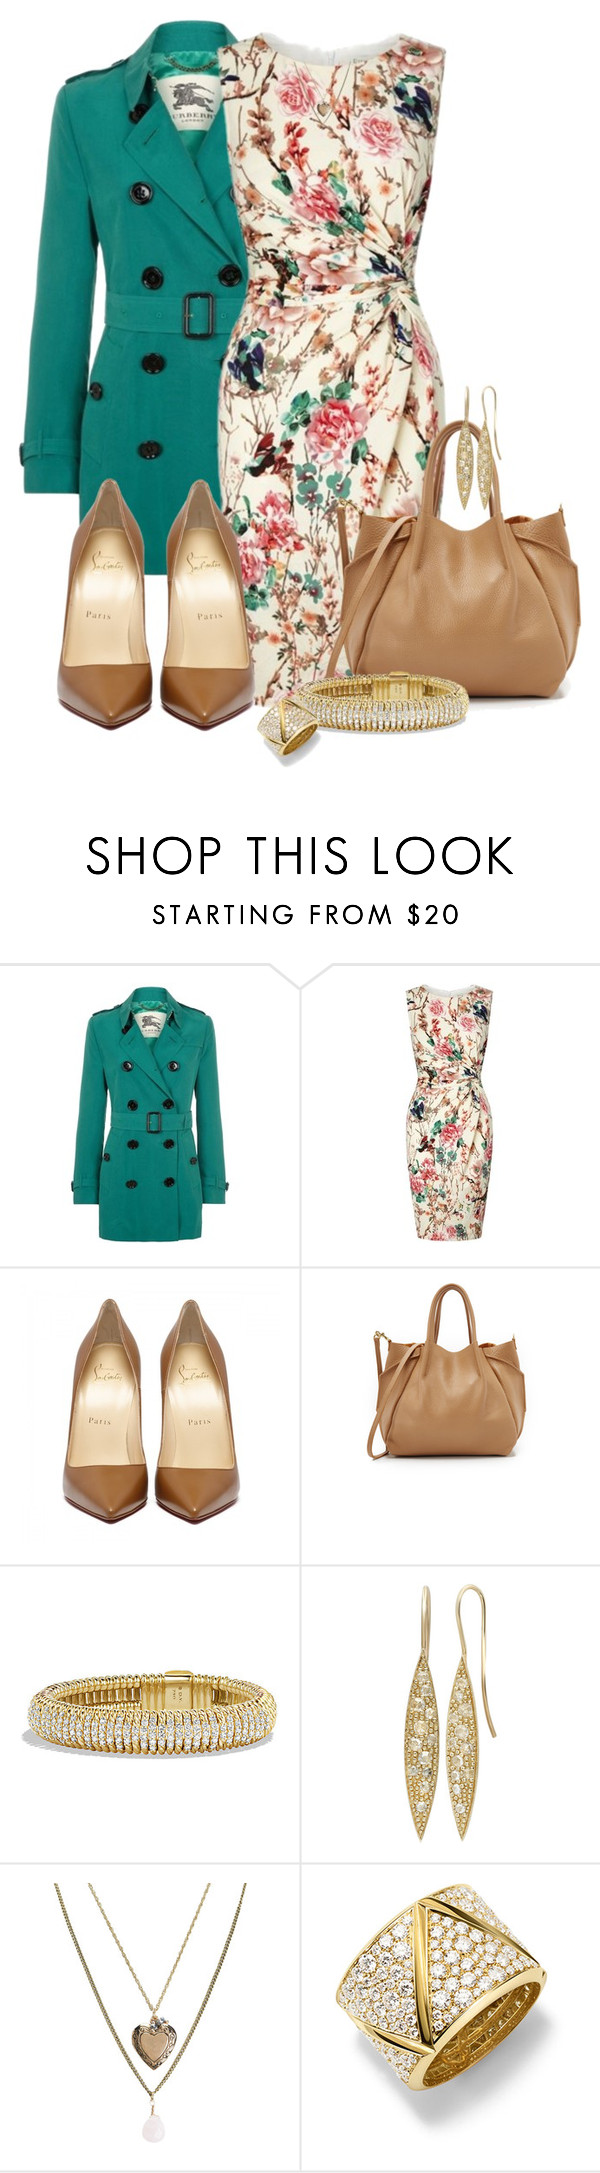 """Sassy"" by ljbminime ❤ liked on Polyvore featuring Burberry, Lipsy, Oliveve, David Yurman, Aéropostale, Marina B, women's clothing, women, female and woman"